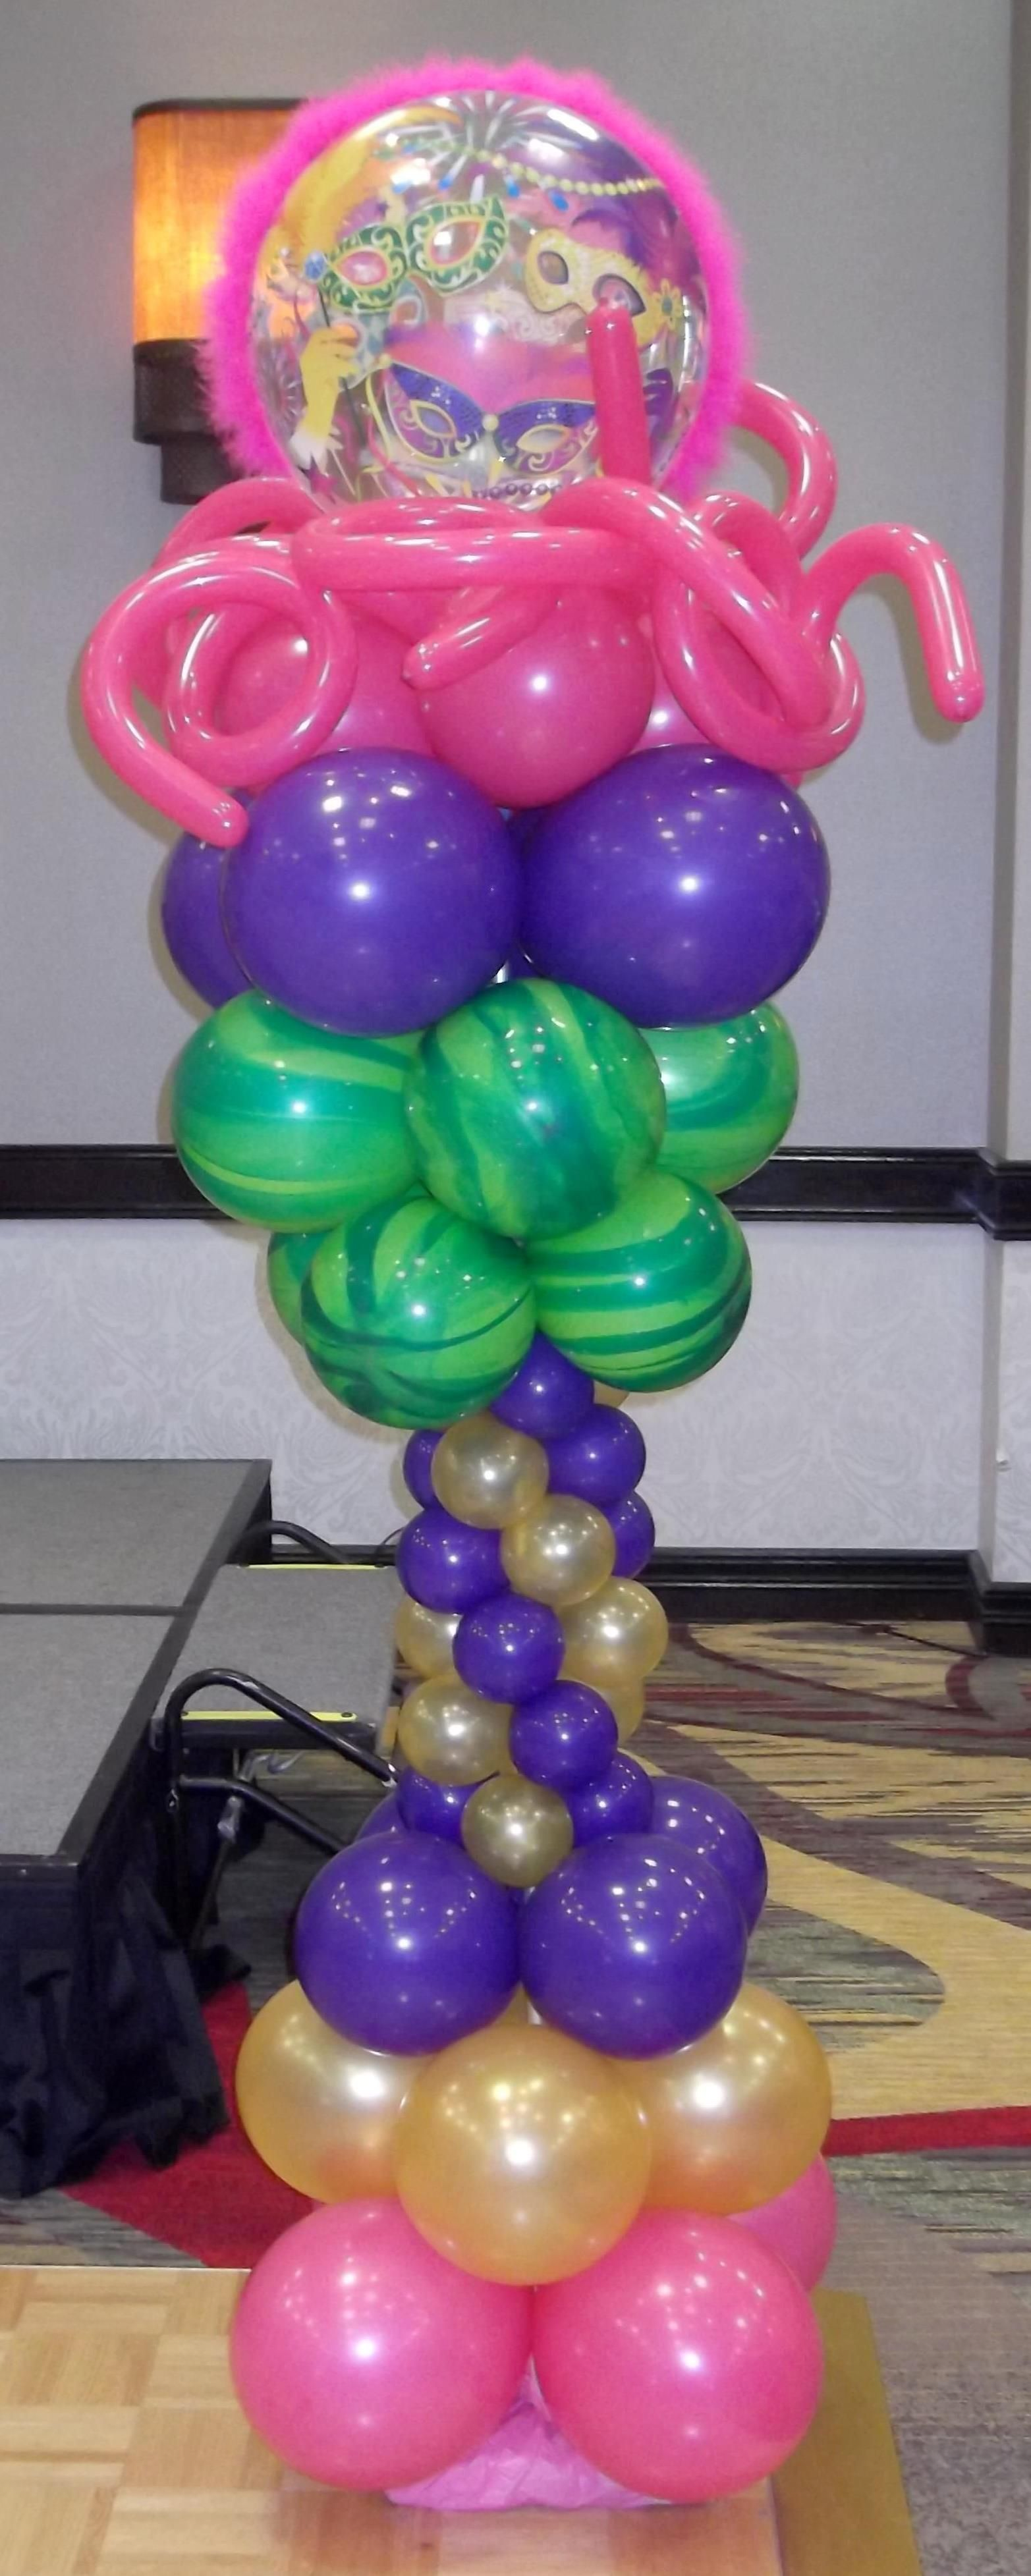 Mardi Gras Balloon column by balloonsandmoregifts.com